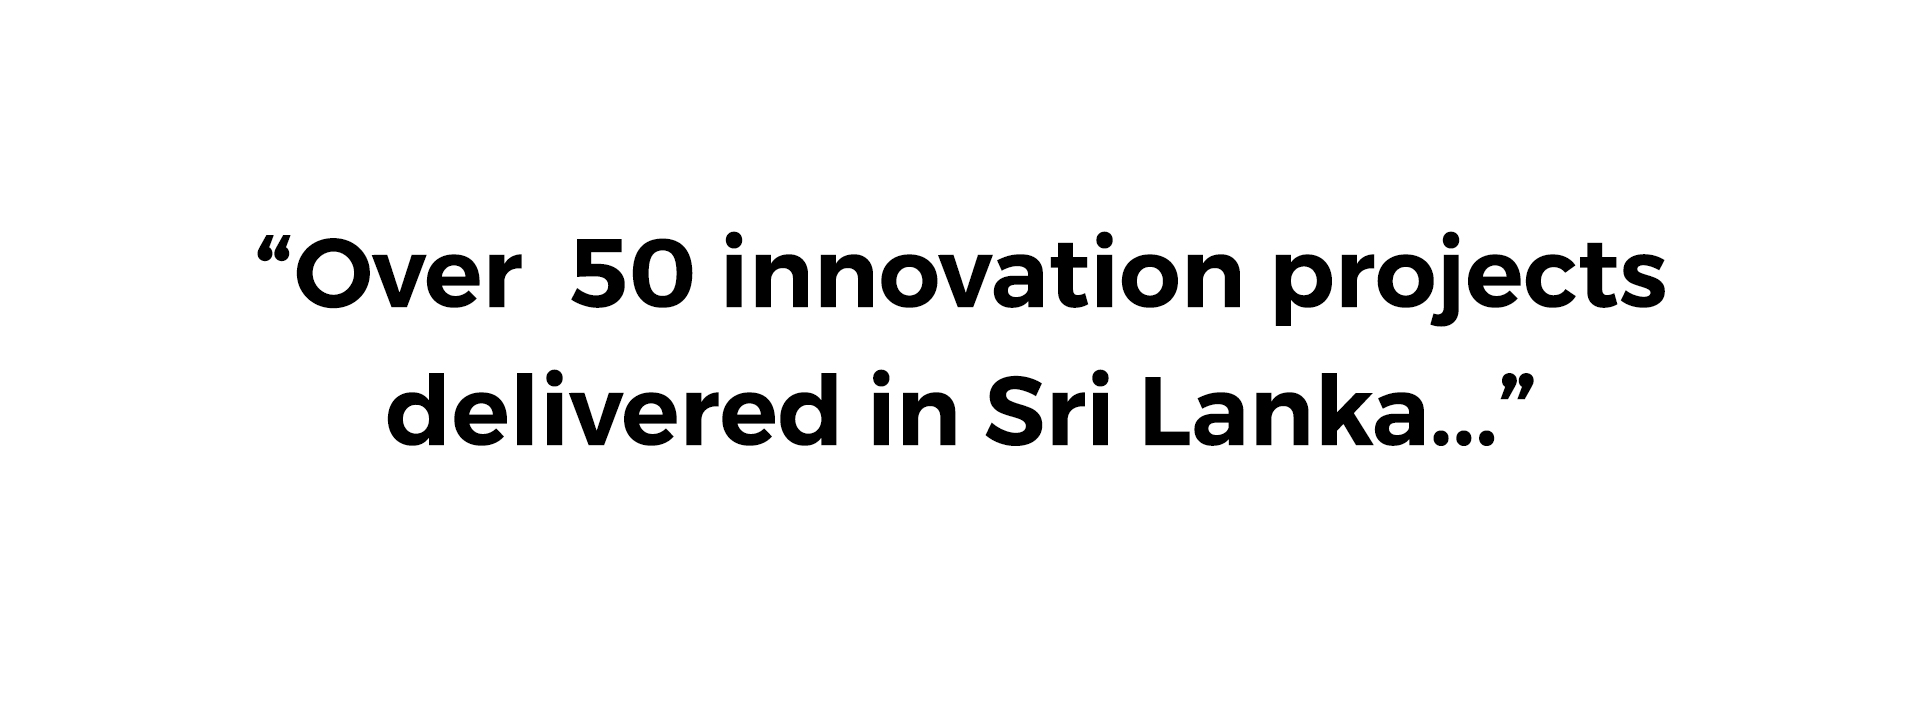 Over 50 innovation projects delivered in SriLanka